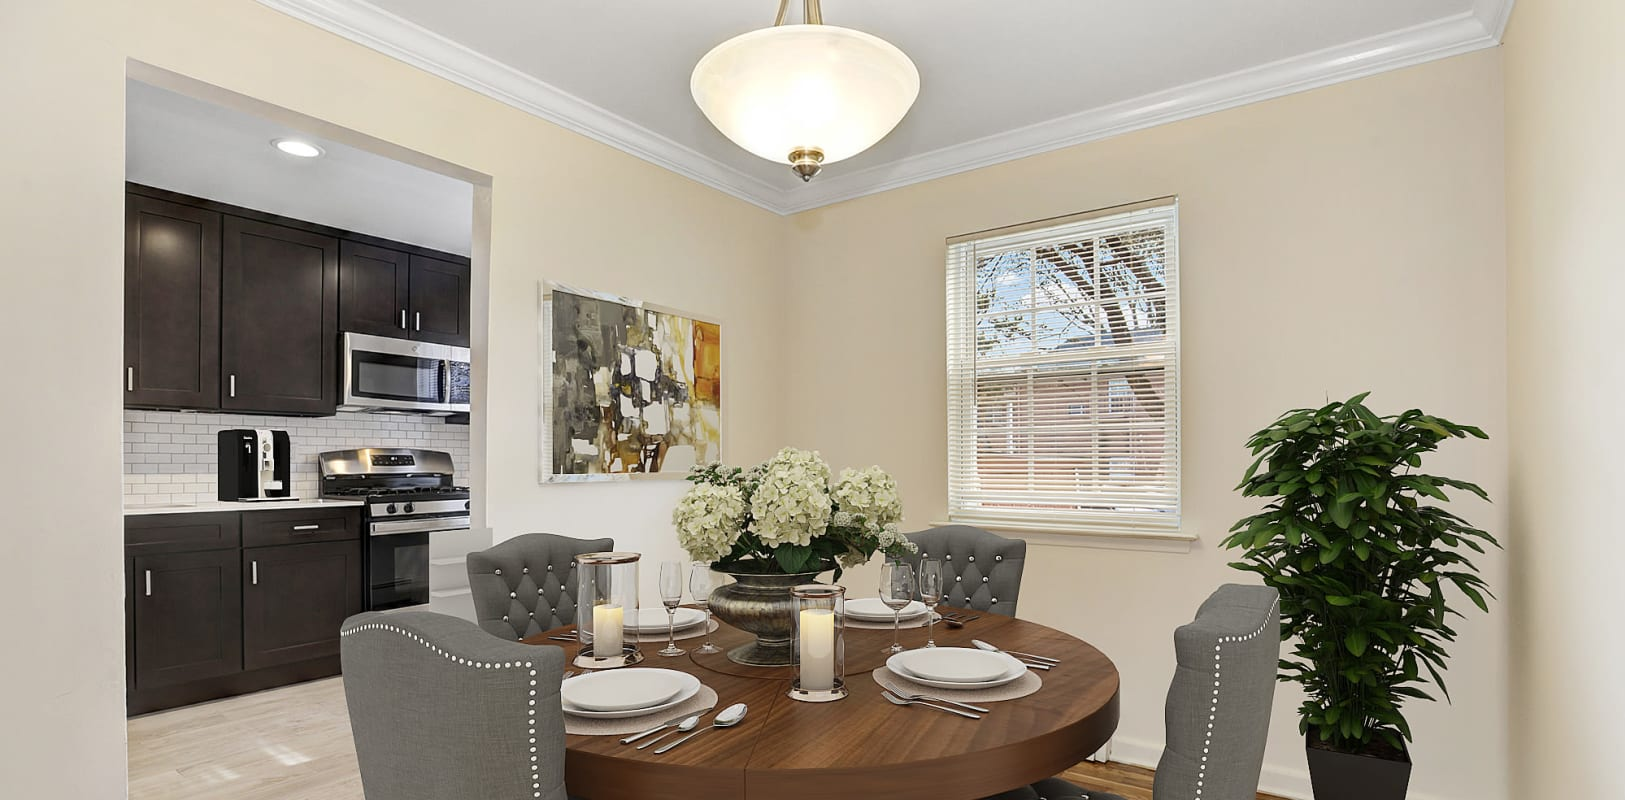 Dining room and large kitchen with new appliances at Park Lane Apartments in Little Falls, New Jersey